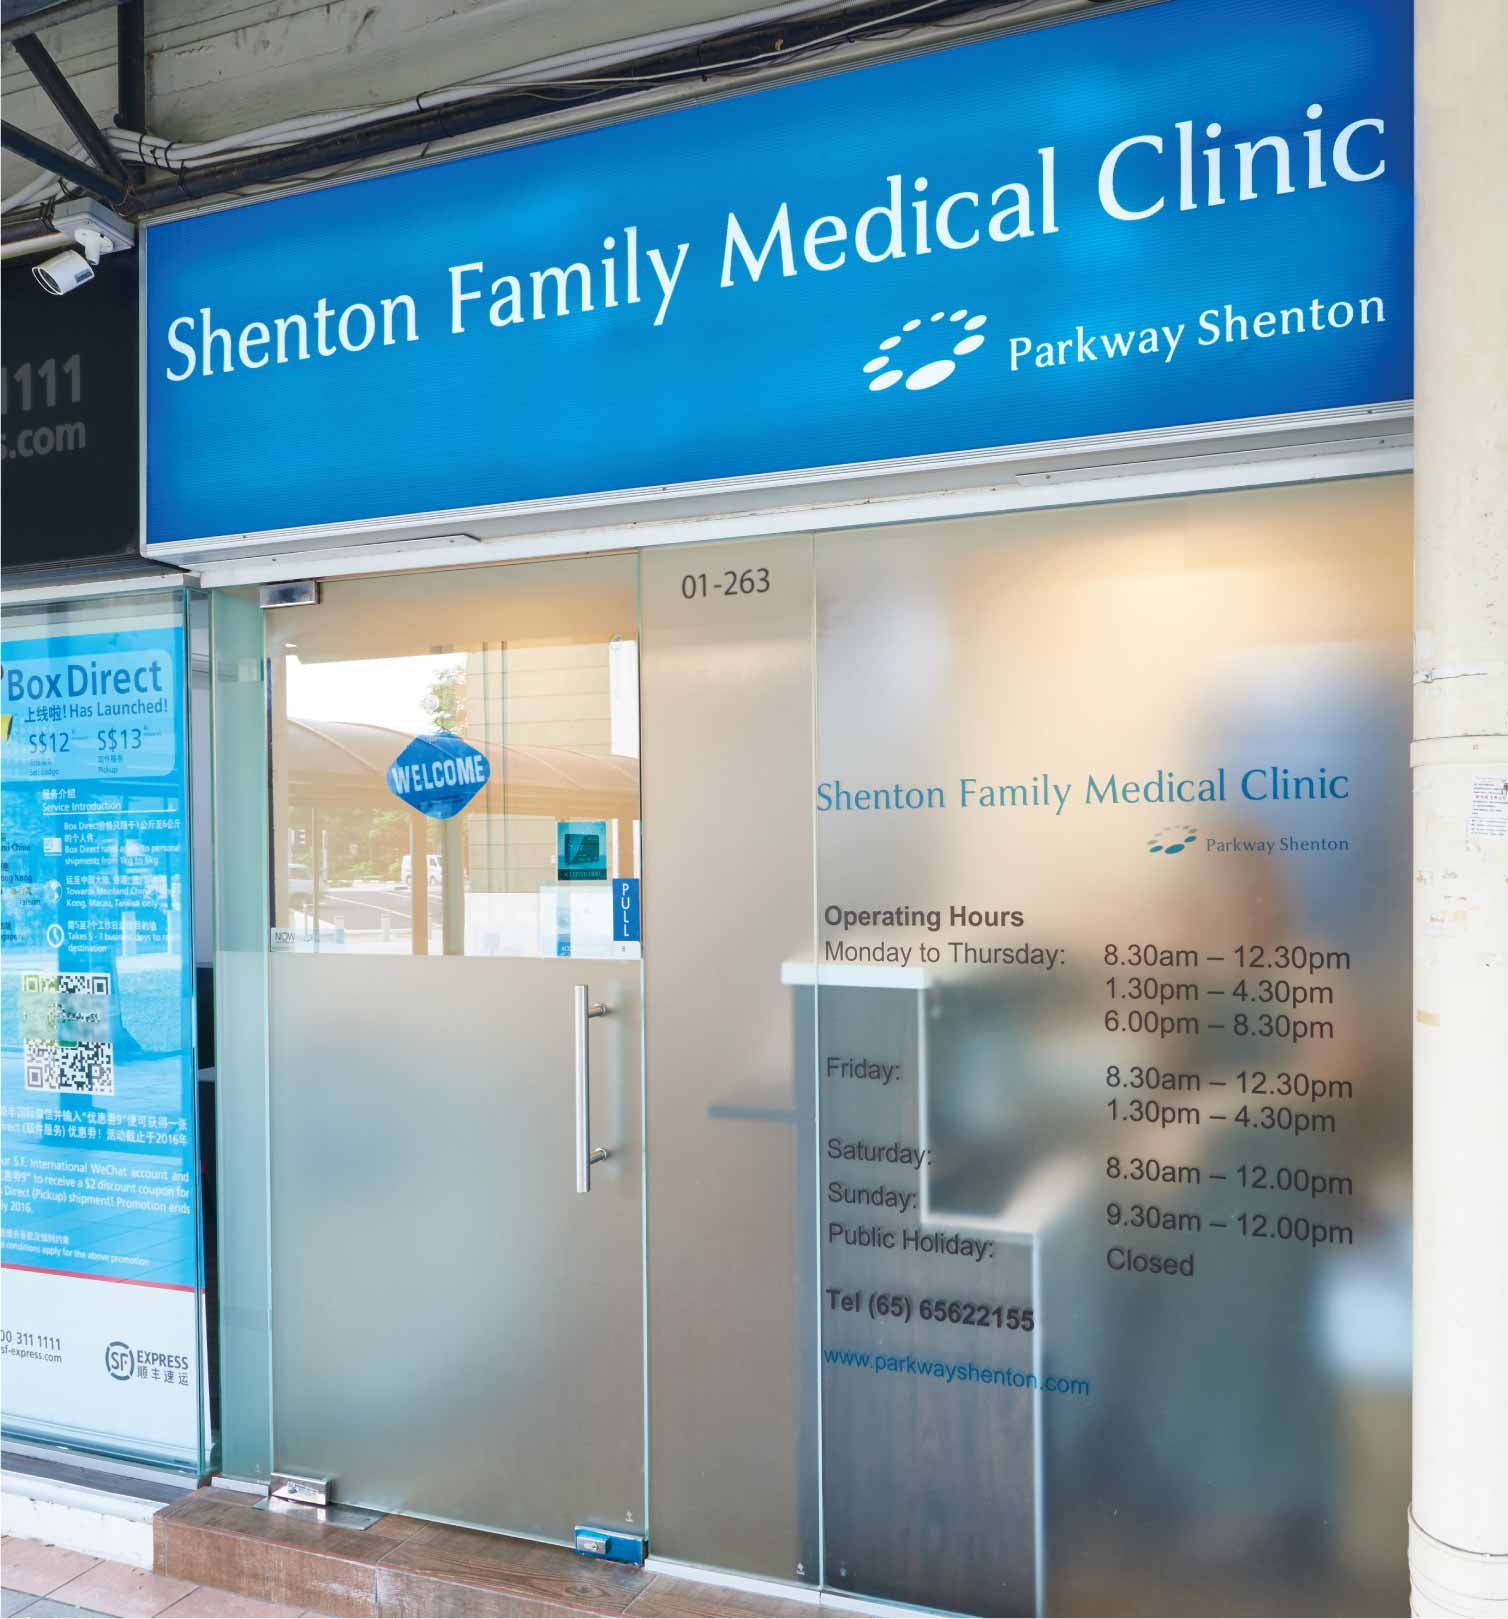 Jurong East - Shenton Family Medical Clinic